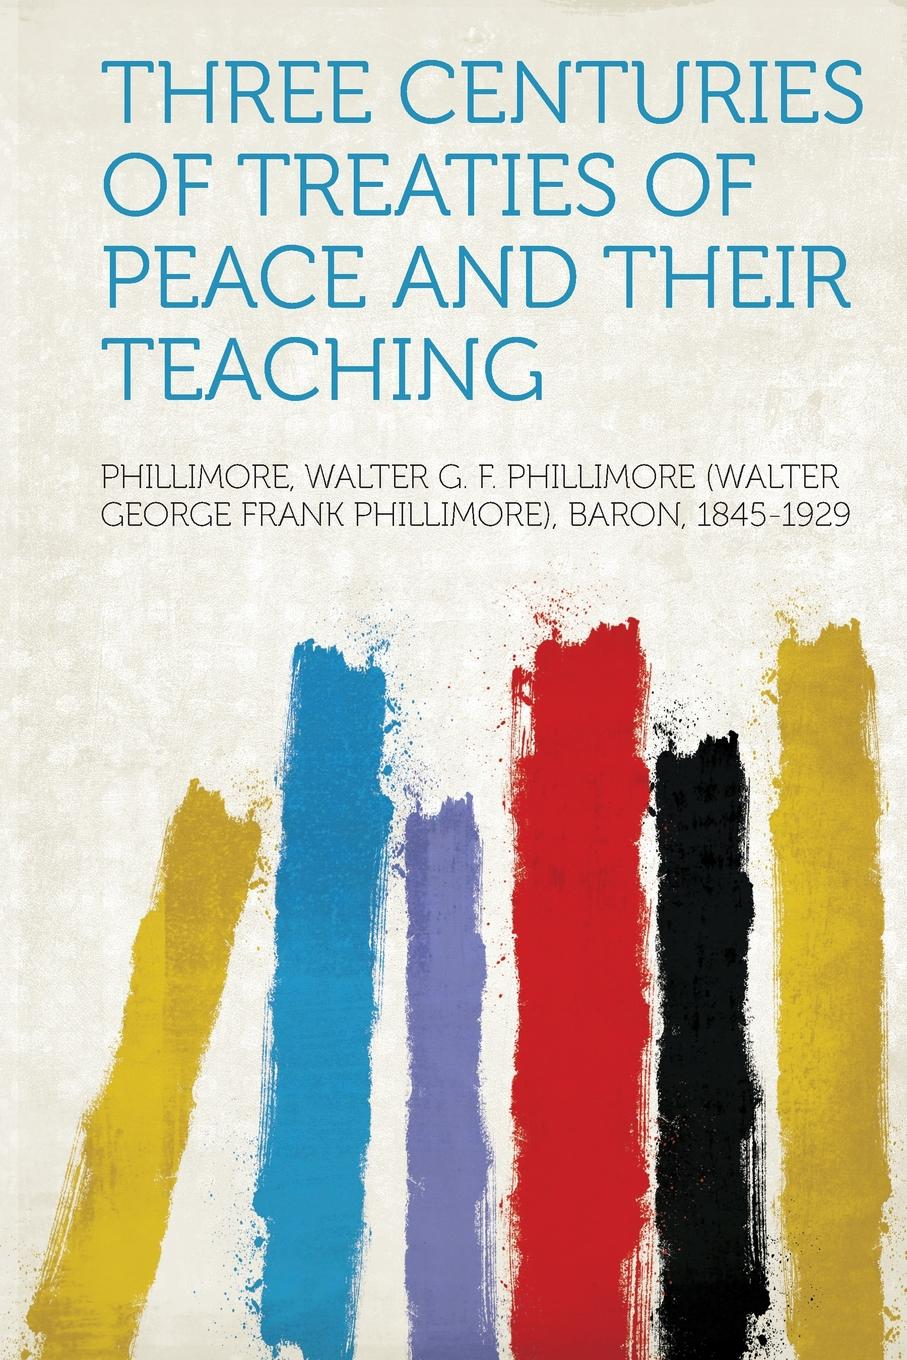 Phillimore Walter G. F. Phil 1845-1929 Three Centuries of Treaties Peace and Their Teaching